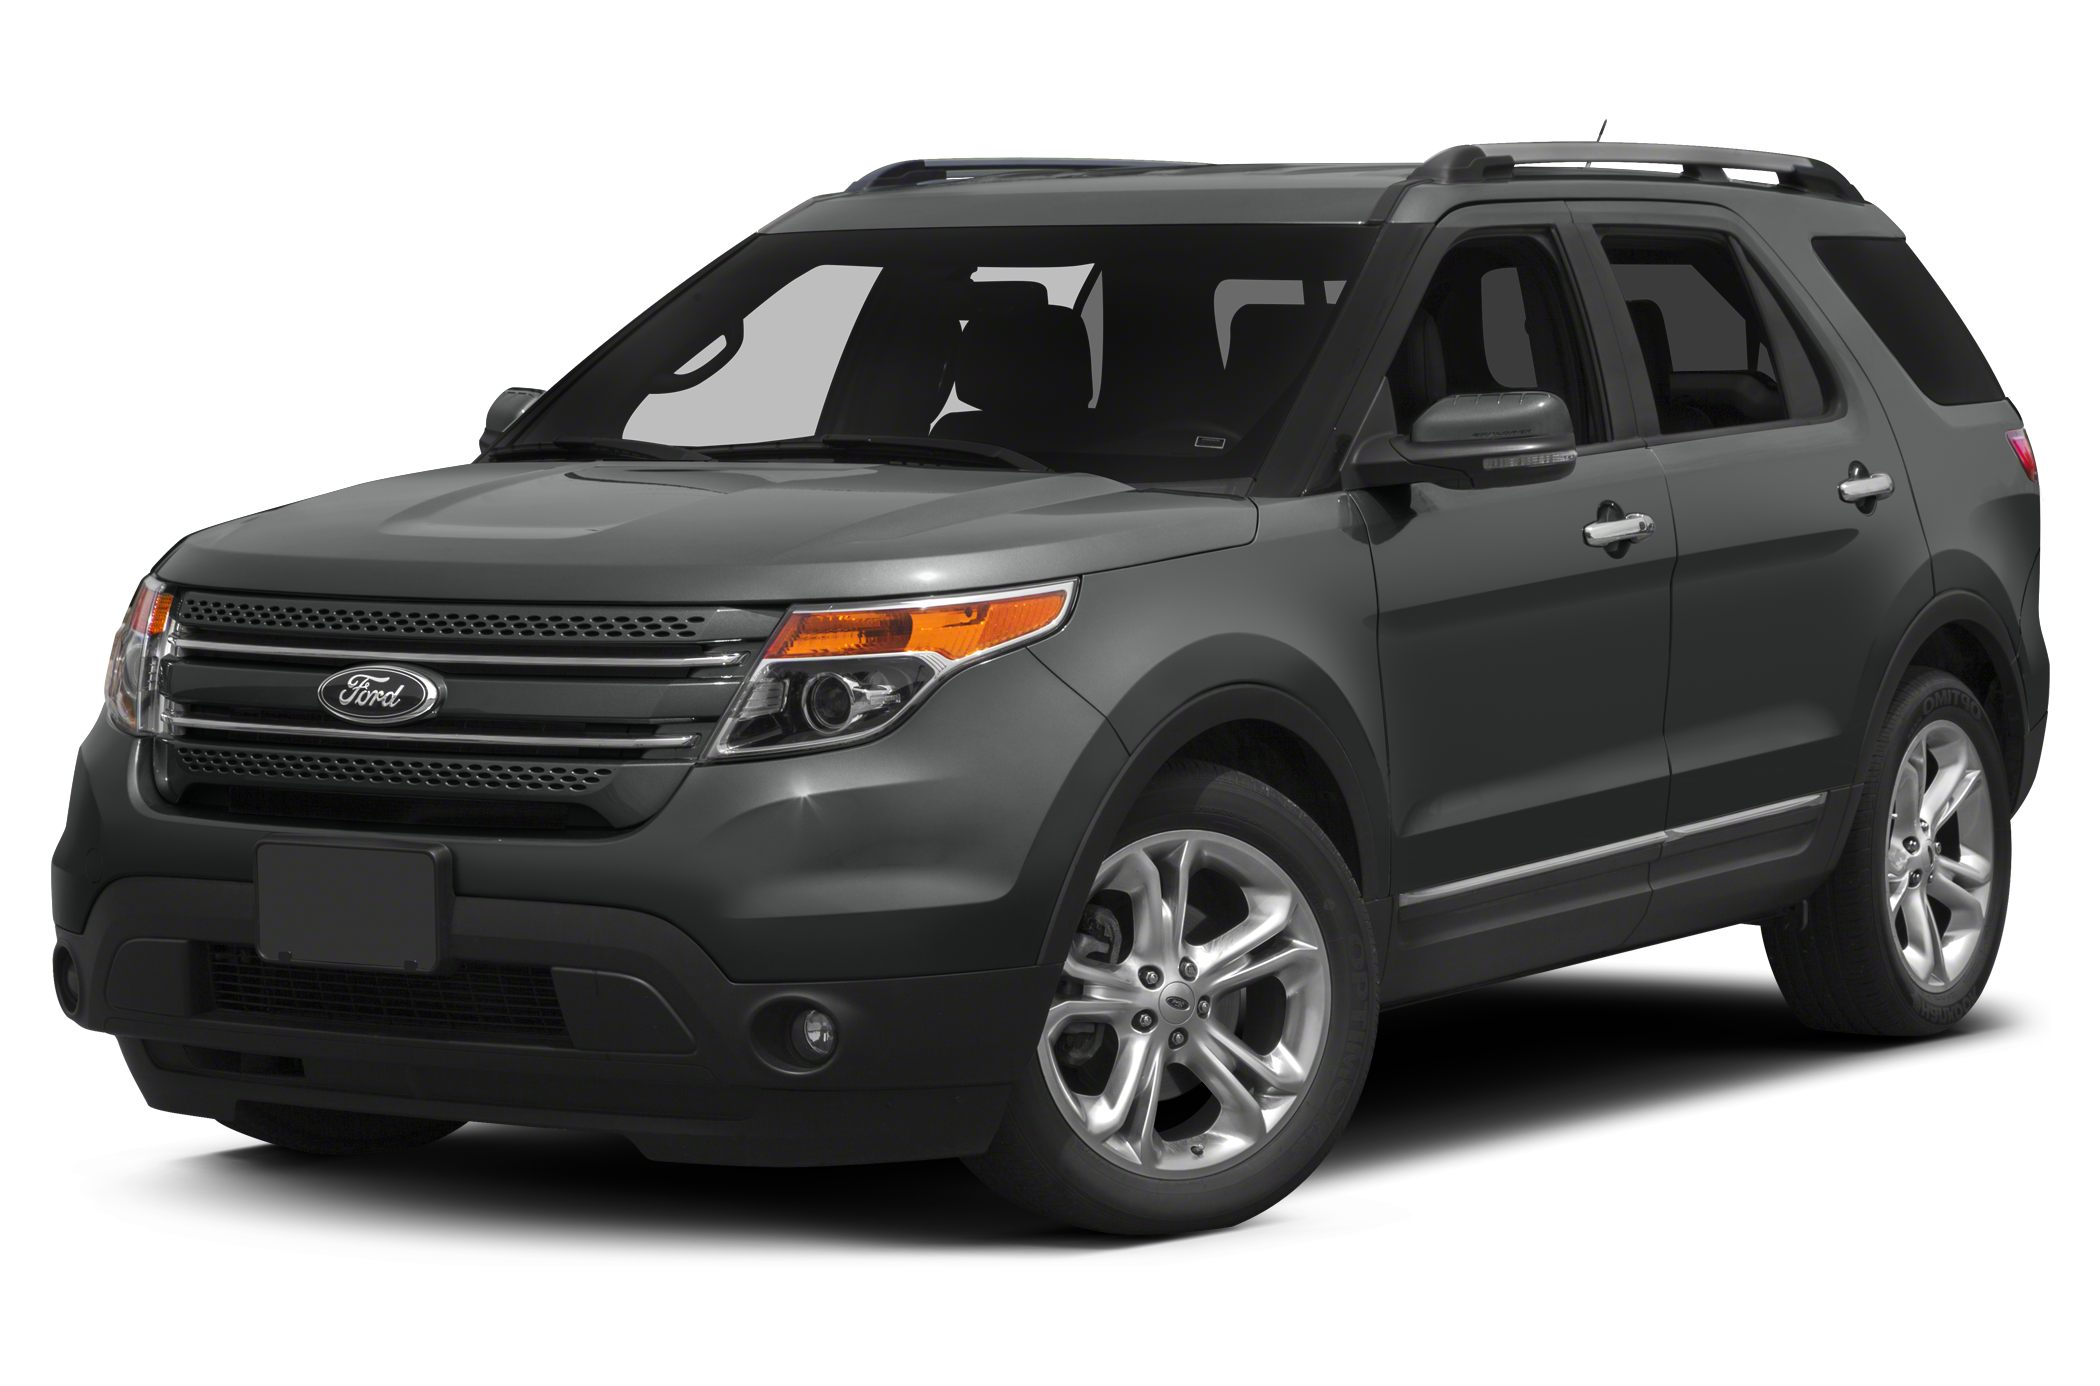 2013 Ford Explorer Specs Safety Rating & MPG CarsDirect